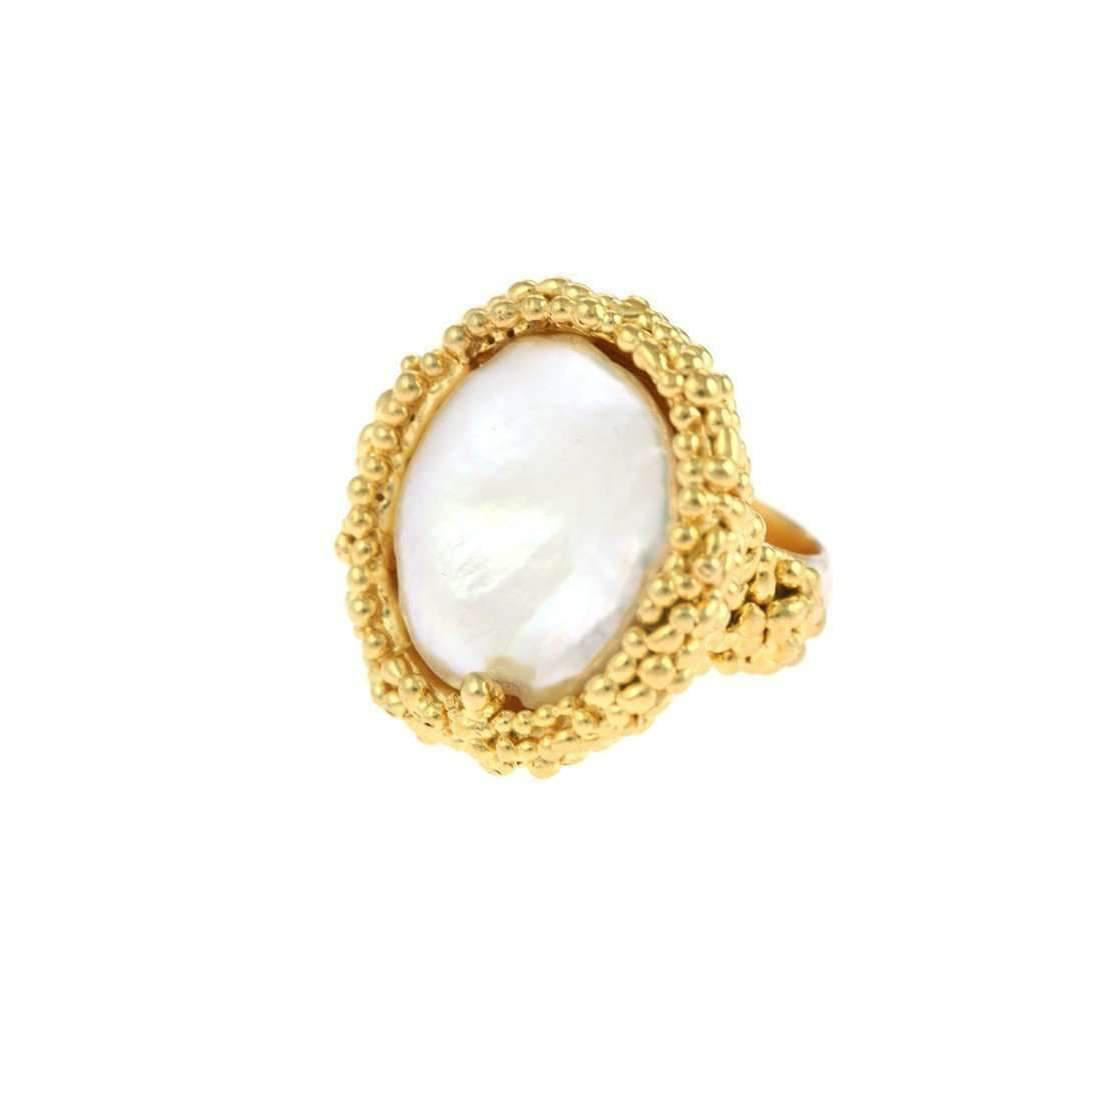 Militza Ortiz Organica Cocktail Ring - Gold With Pearl